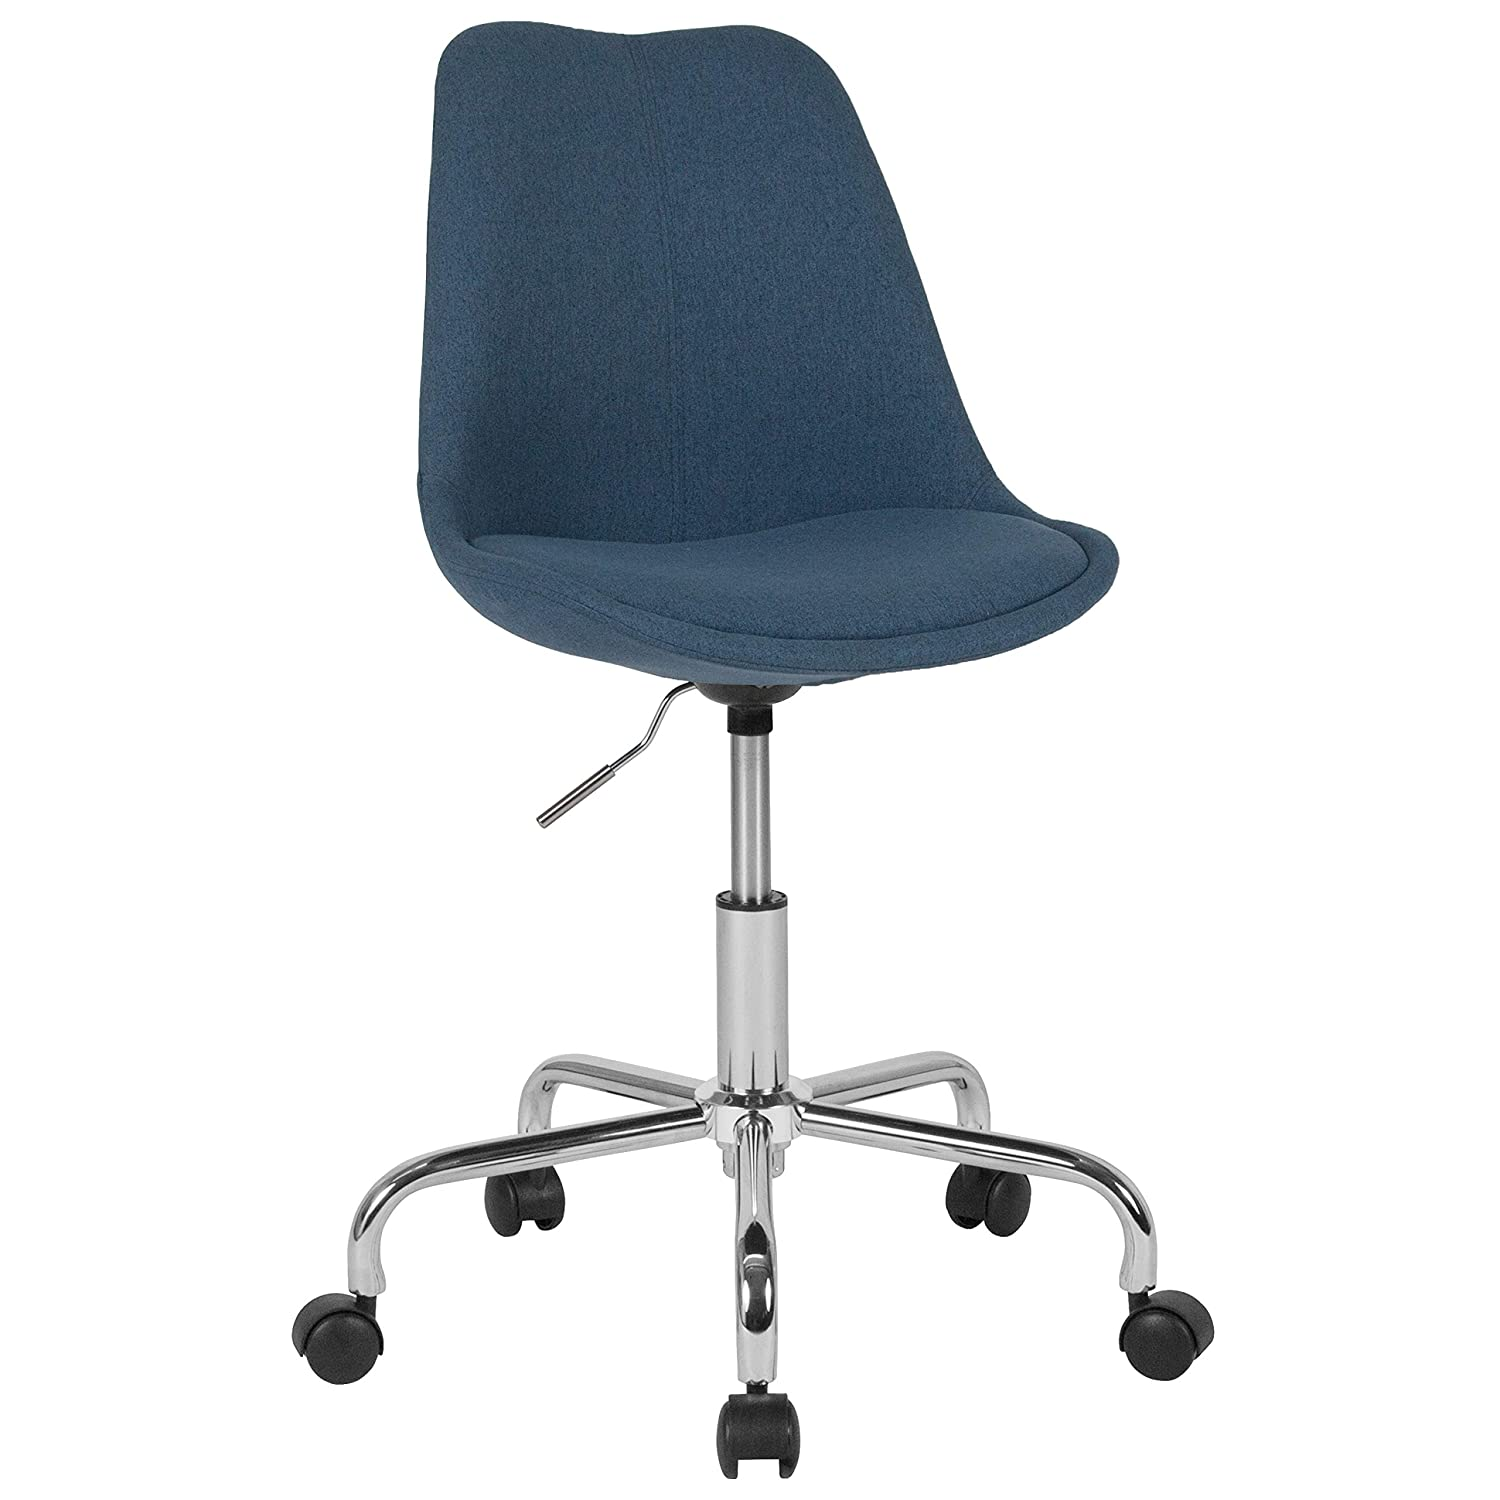 Flash Furniture Aurora Series Mid-Back Blue Fabric Task Office Chair with Pneumatic Lift and Chrome Base